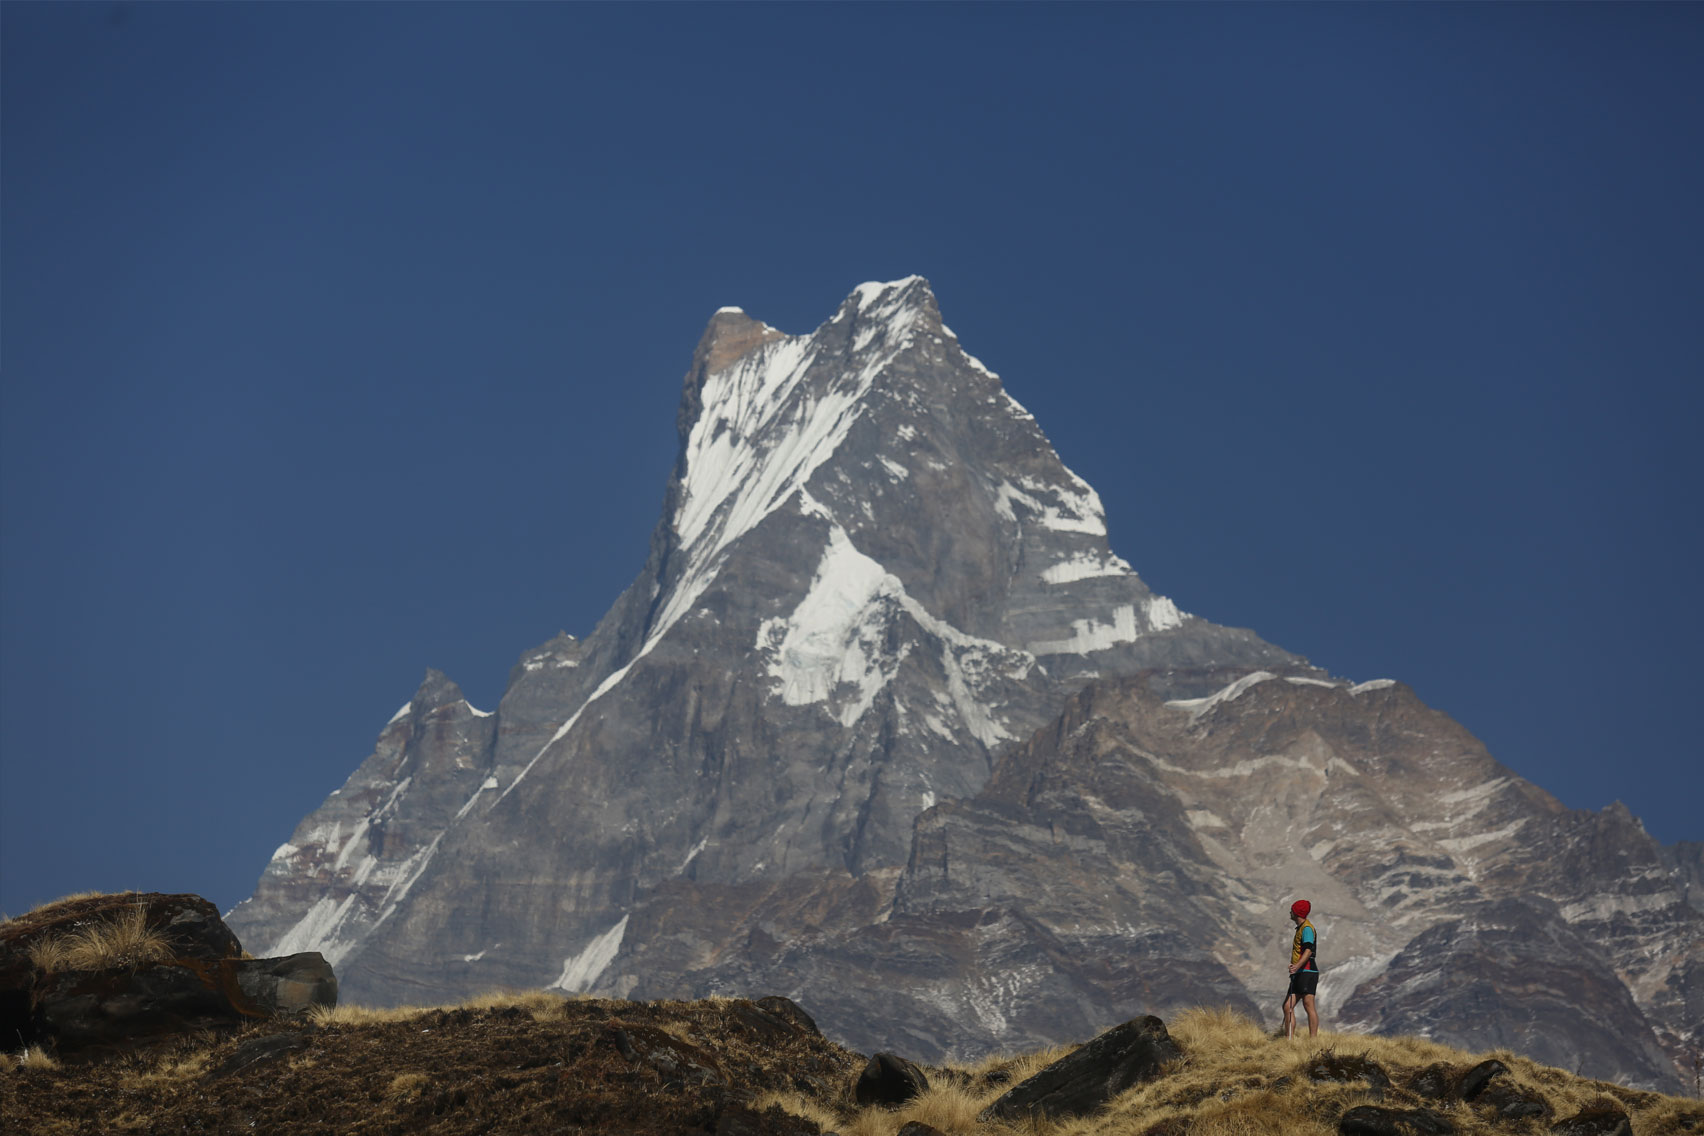 Day 5: Trek from Jungle Camp (2525m) to Low Camp/Humaal (4 hrs, 2975m)